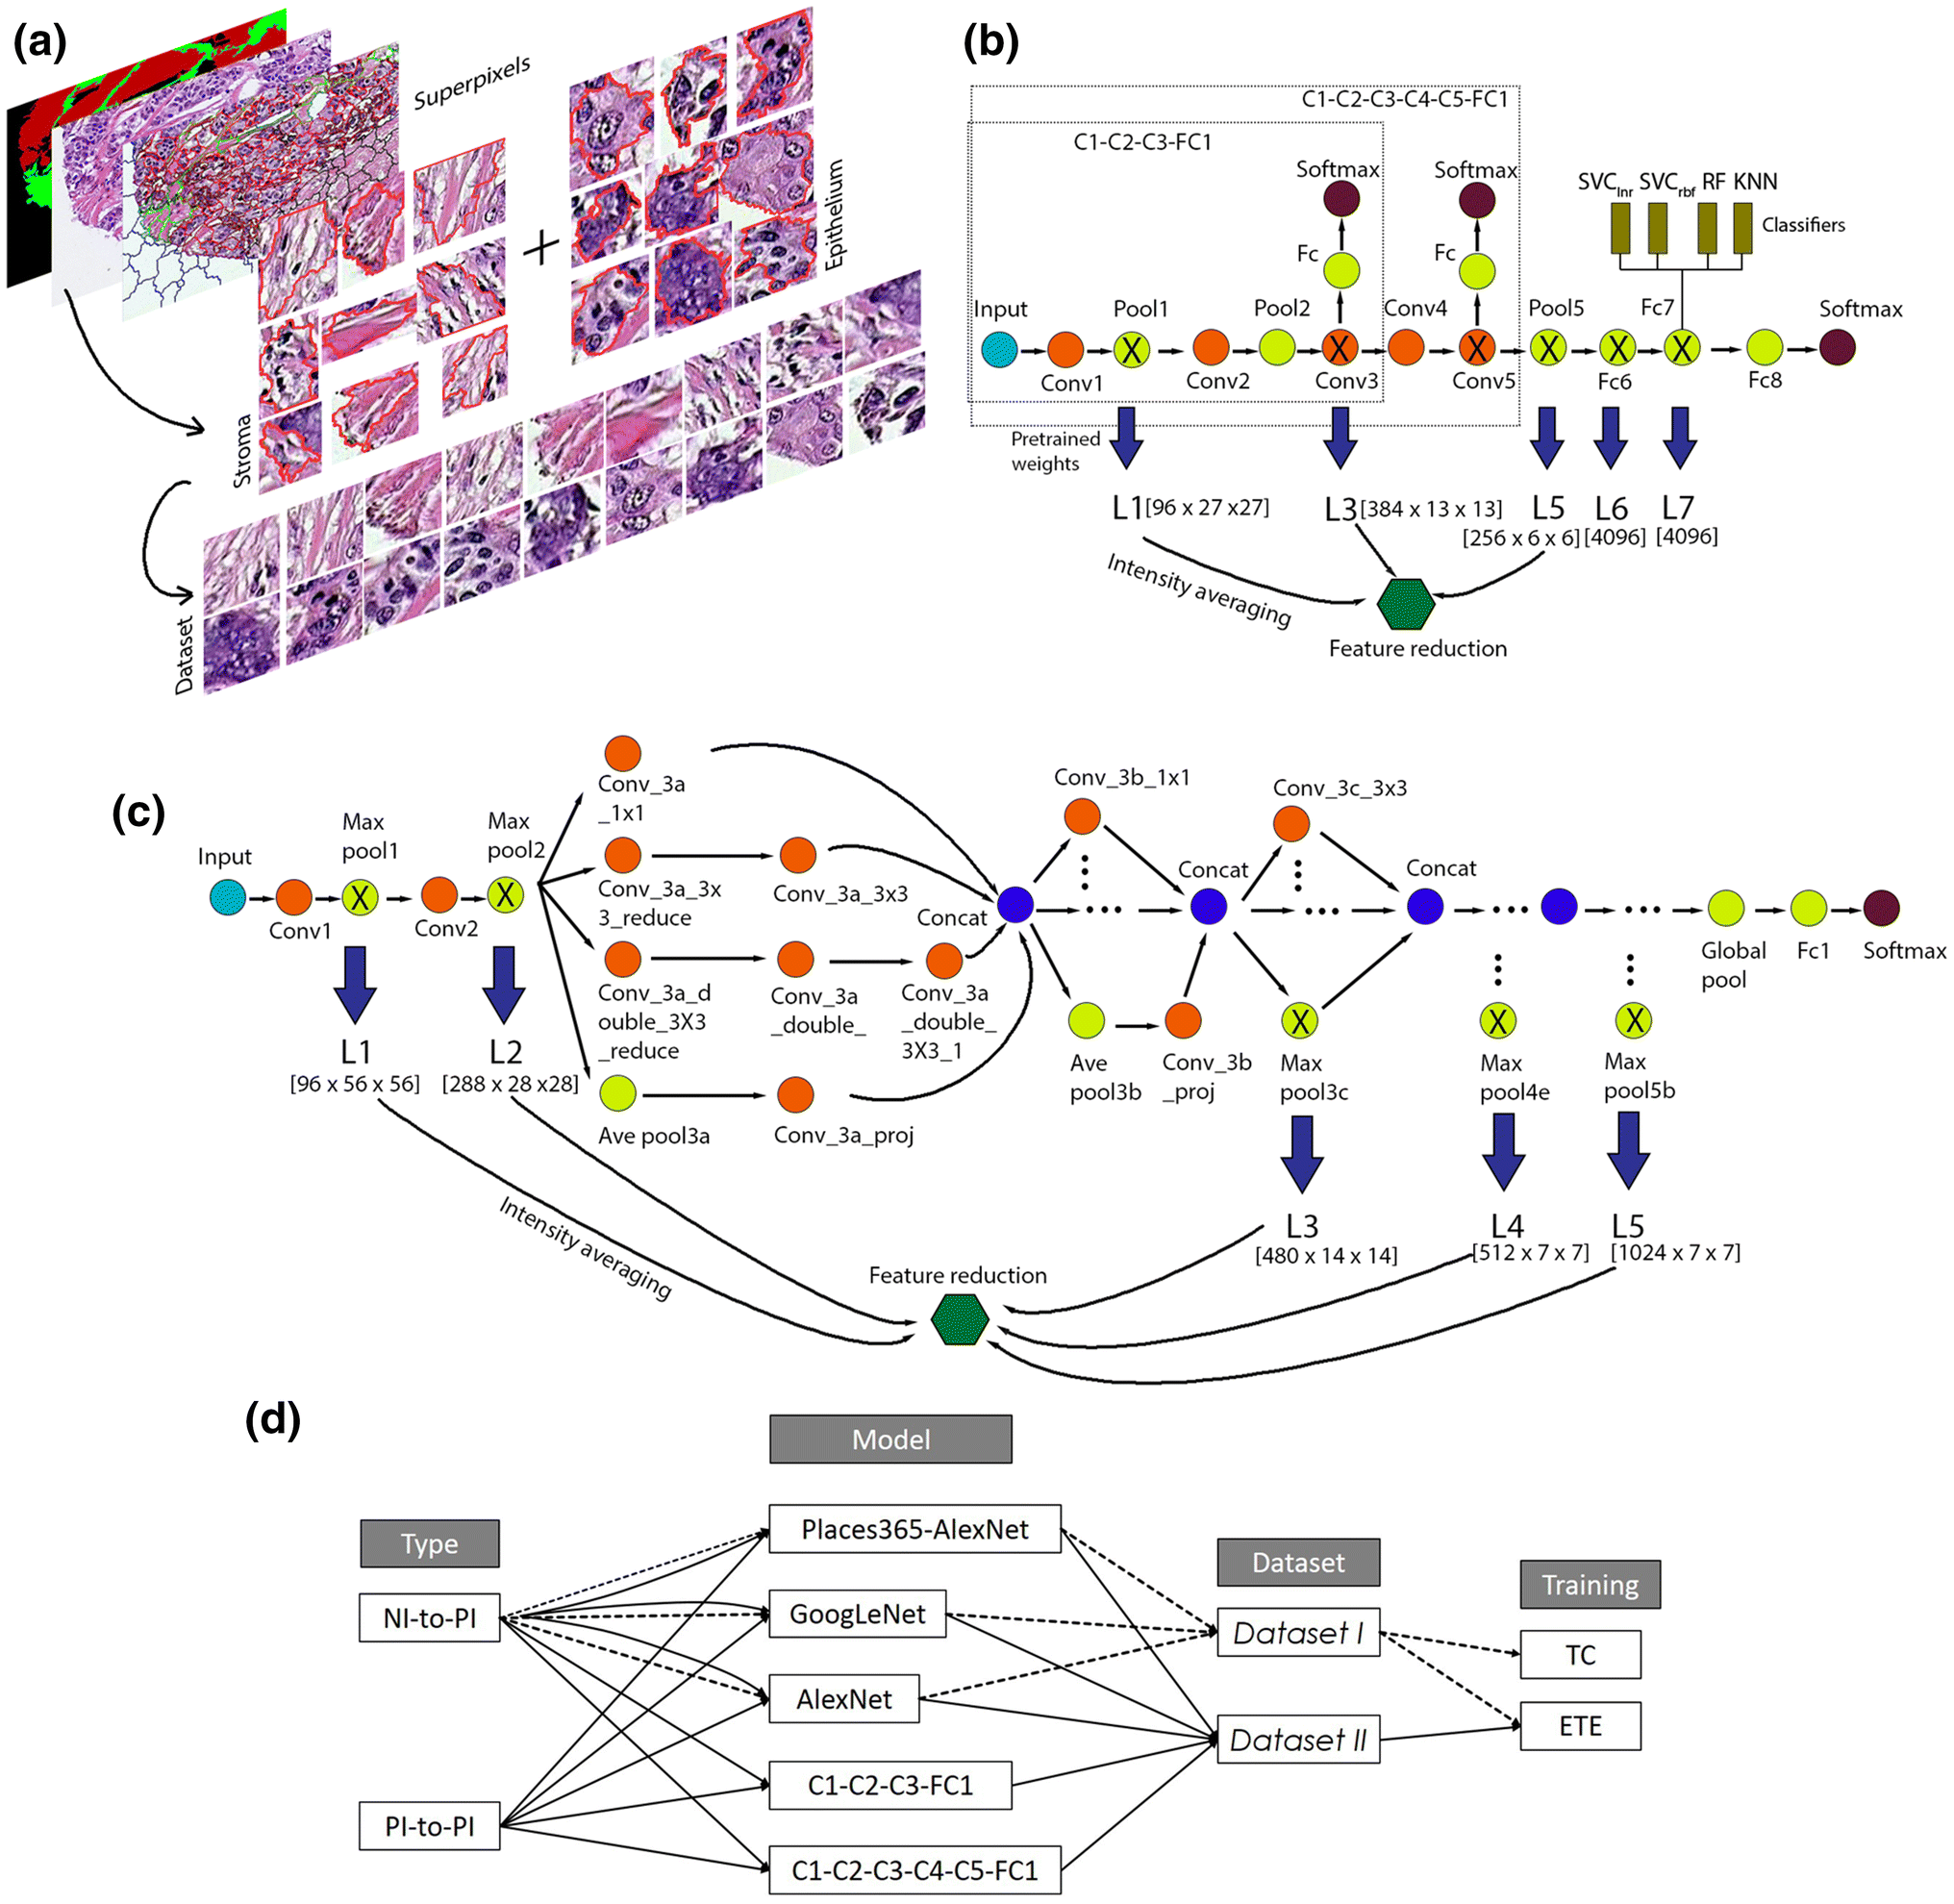 Classification of Tumor Epithelium and Stroma by Exploiting Image